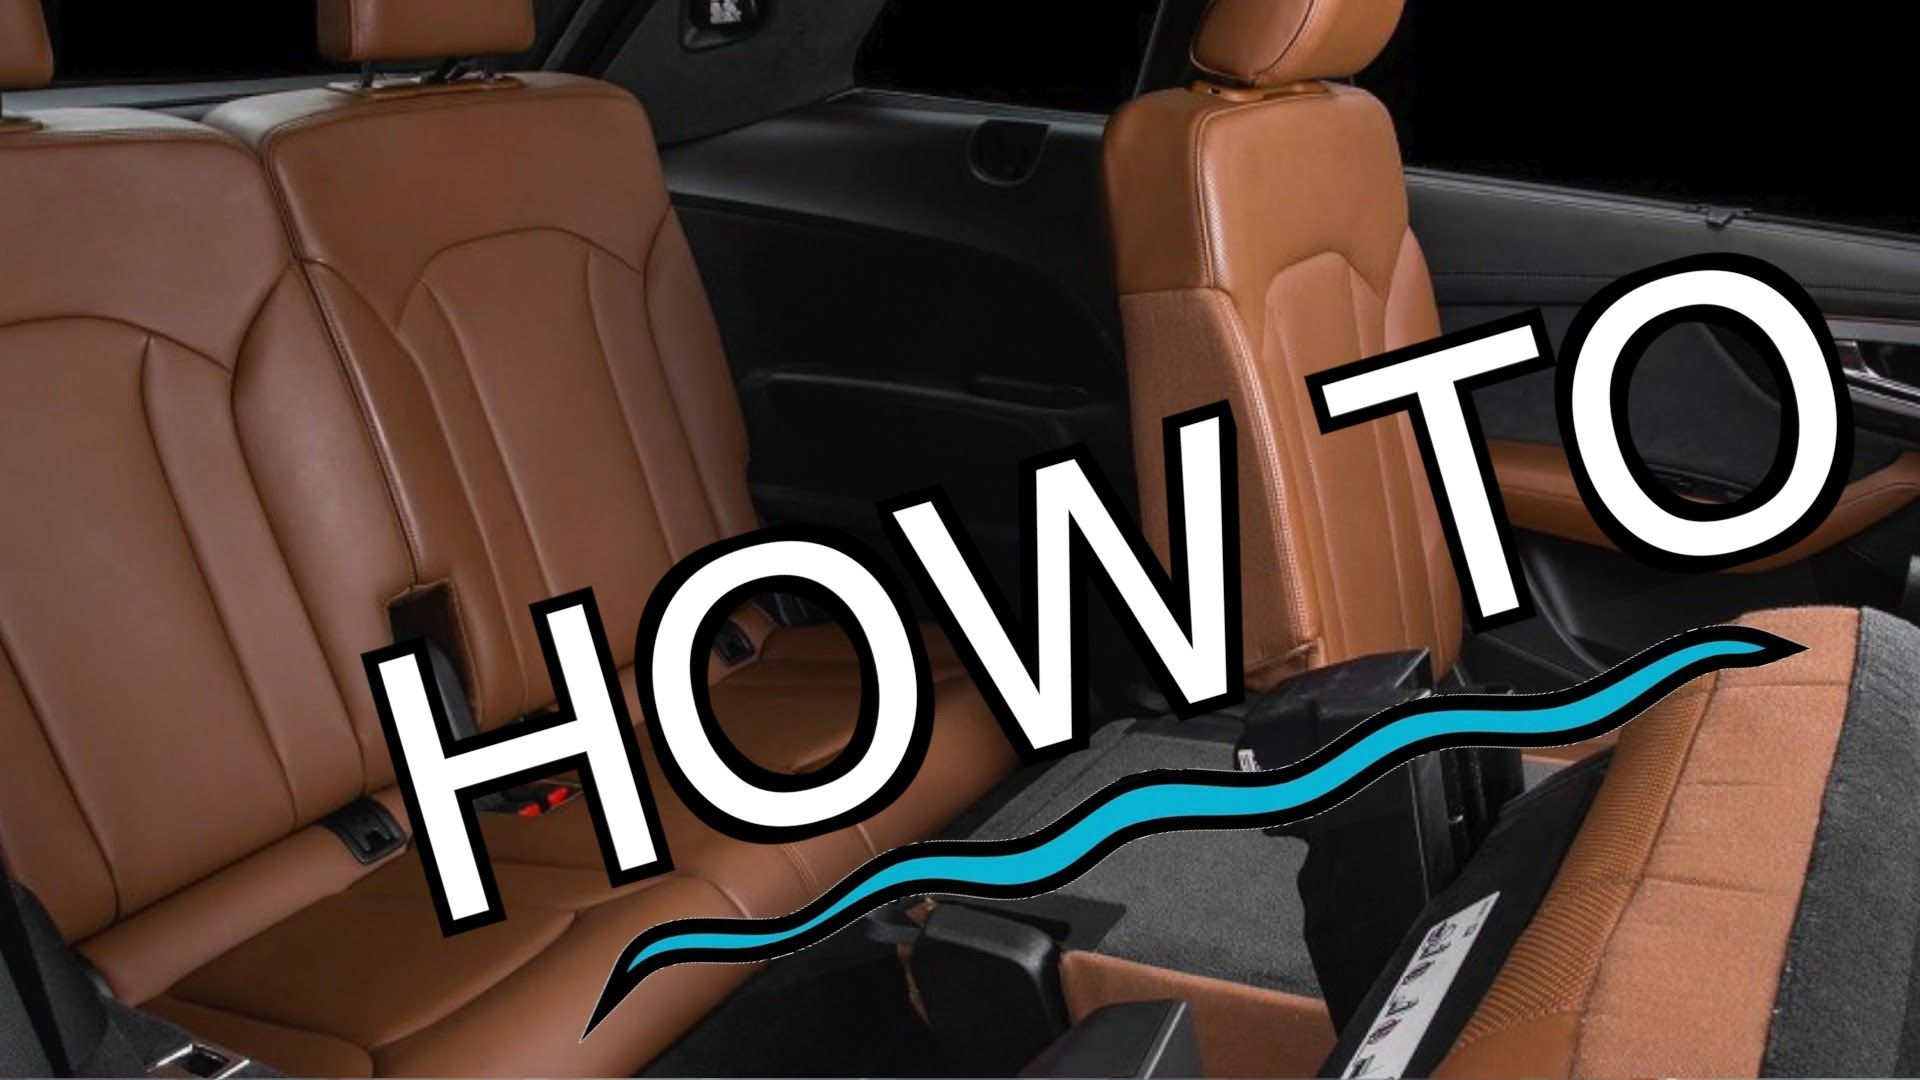 Audi Q7 Tutorial How To Access Rear Seat 3rd Row Audi Q7 Rear Seat Youtube